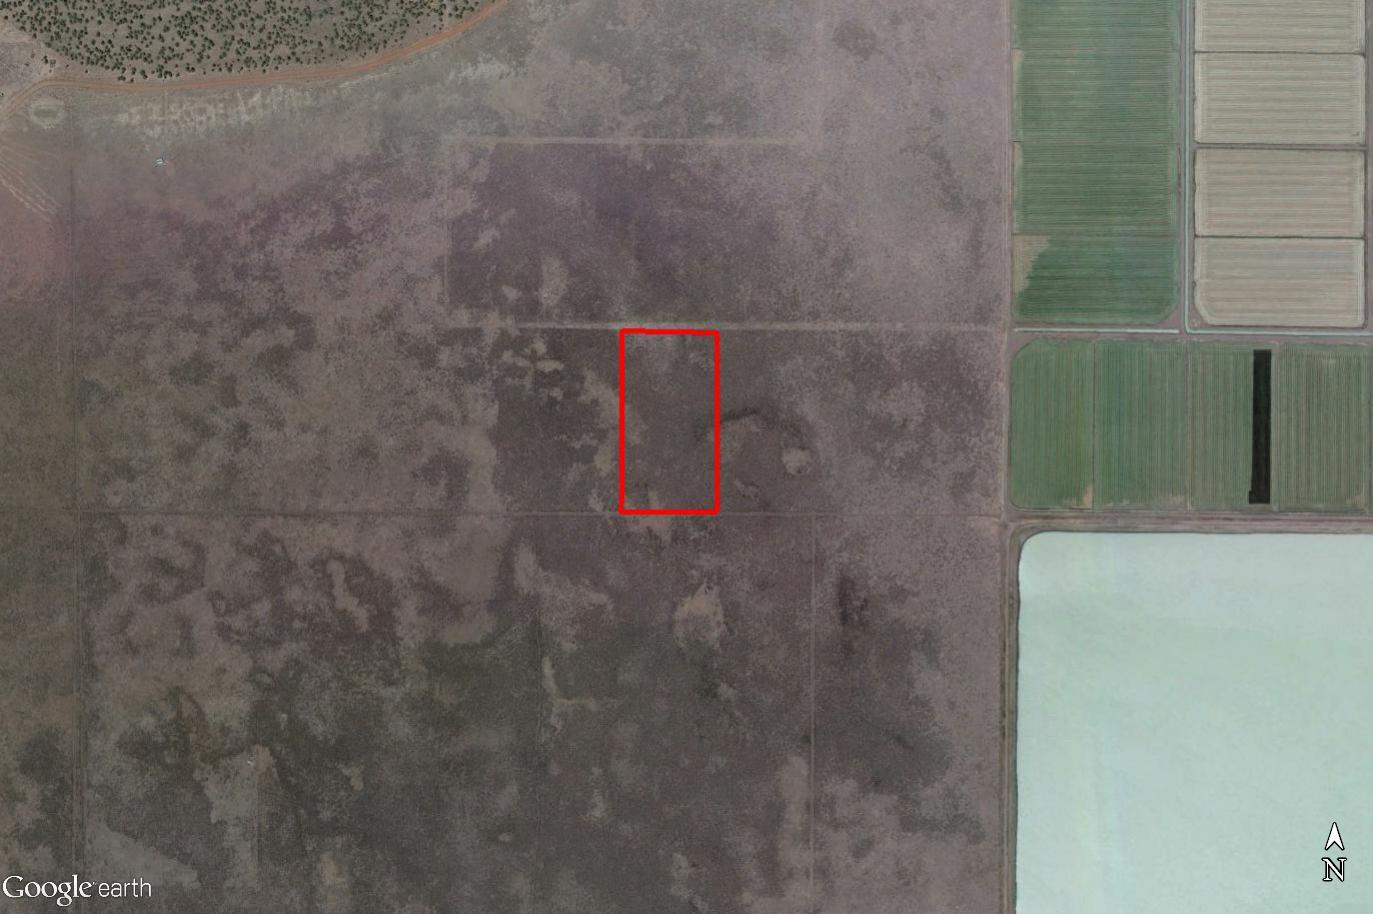 Rich 20+ Acres of Farmland Tucked Away About 10 Miles SW of Brockman - Image 2